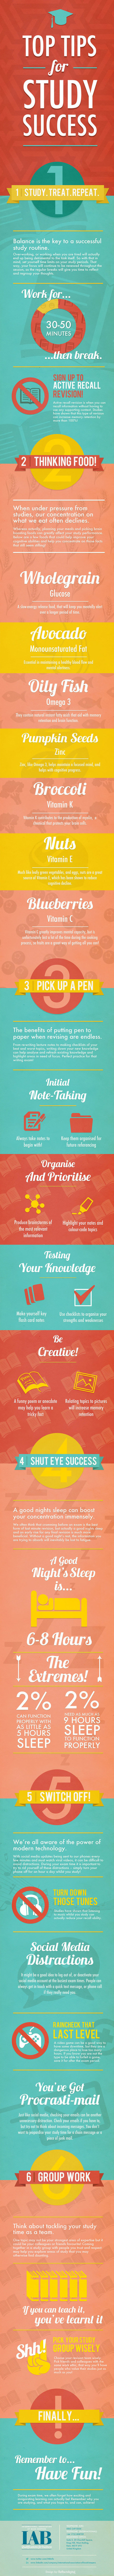 Top Tips For Study Success Infographic - e-Learning Infographics | Café puntocom Leche | Scoop.it